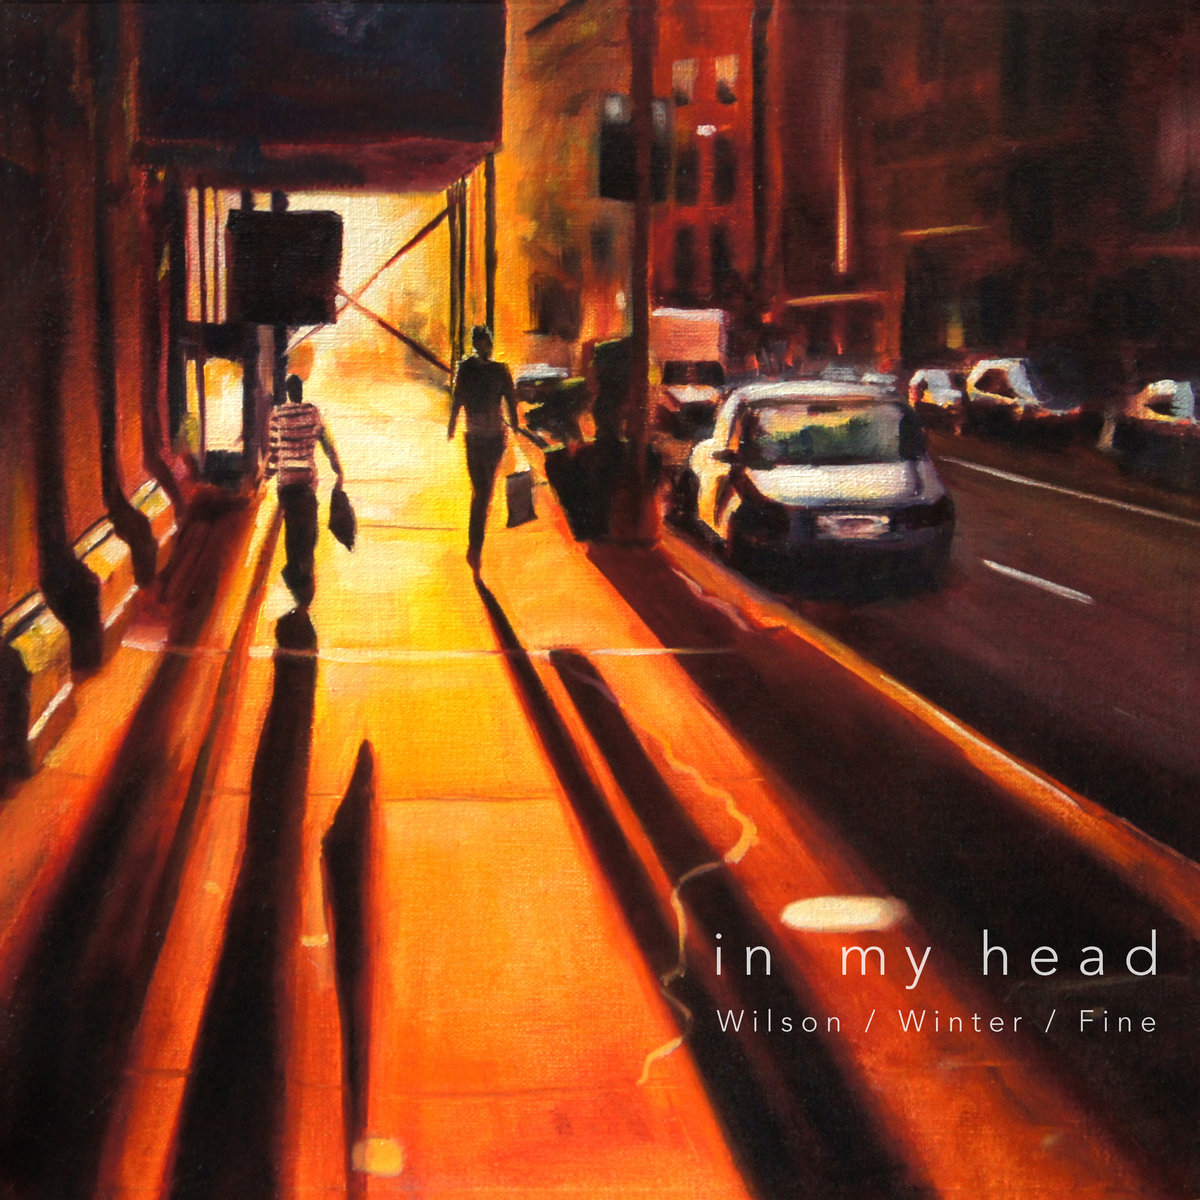 in my head by Noah Evan Wilson (Feat. Jake Fine and Elisa Winter)